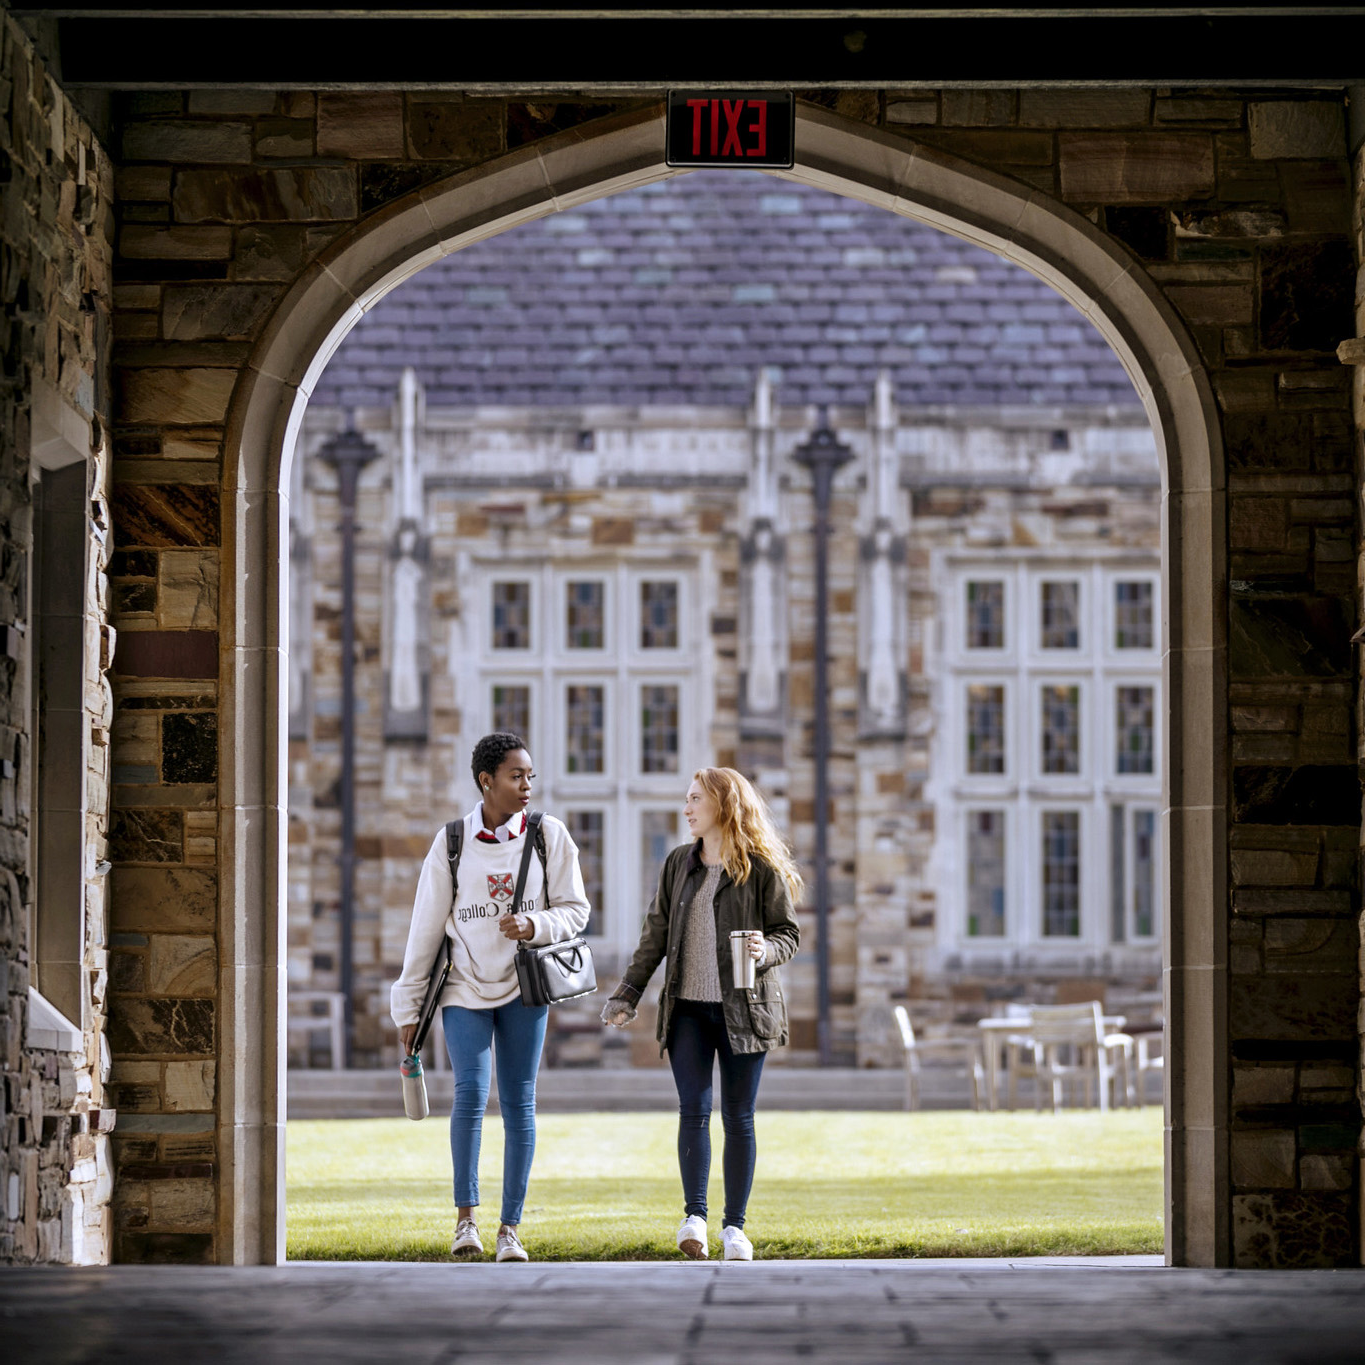 Two students walking together.